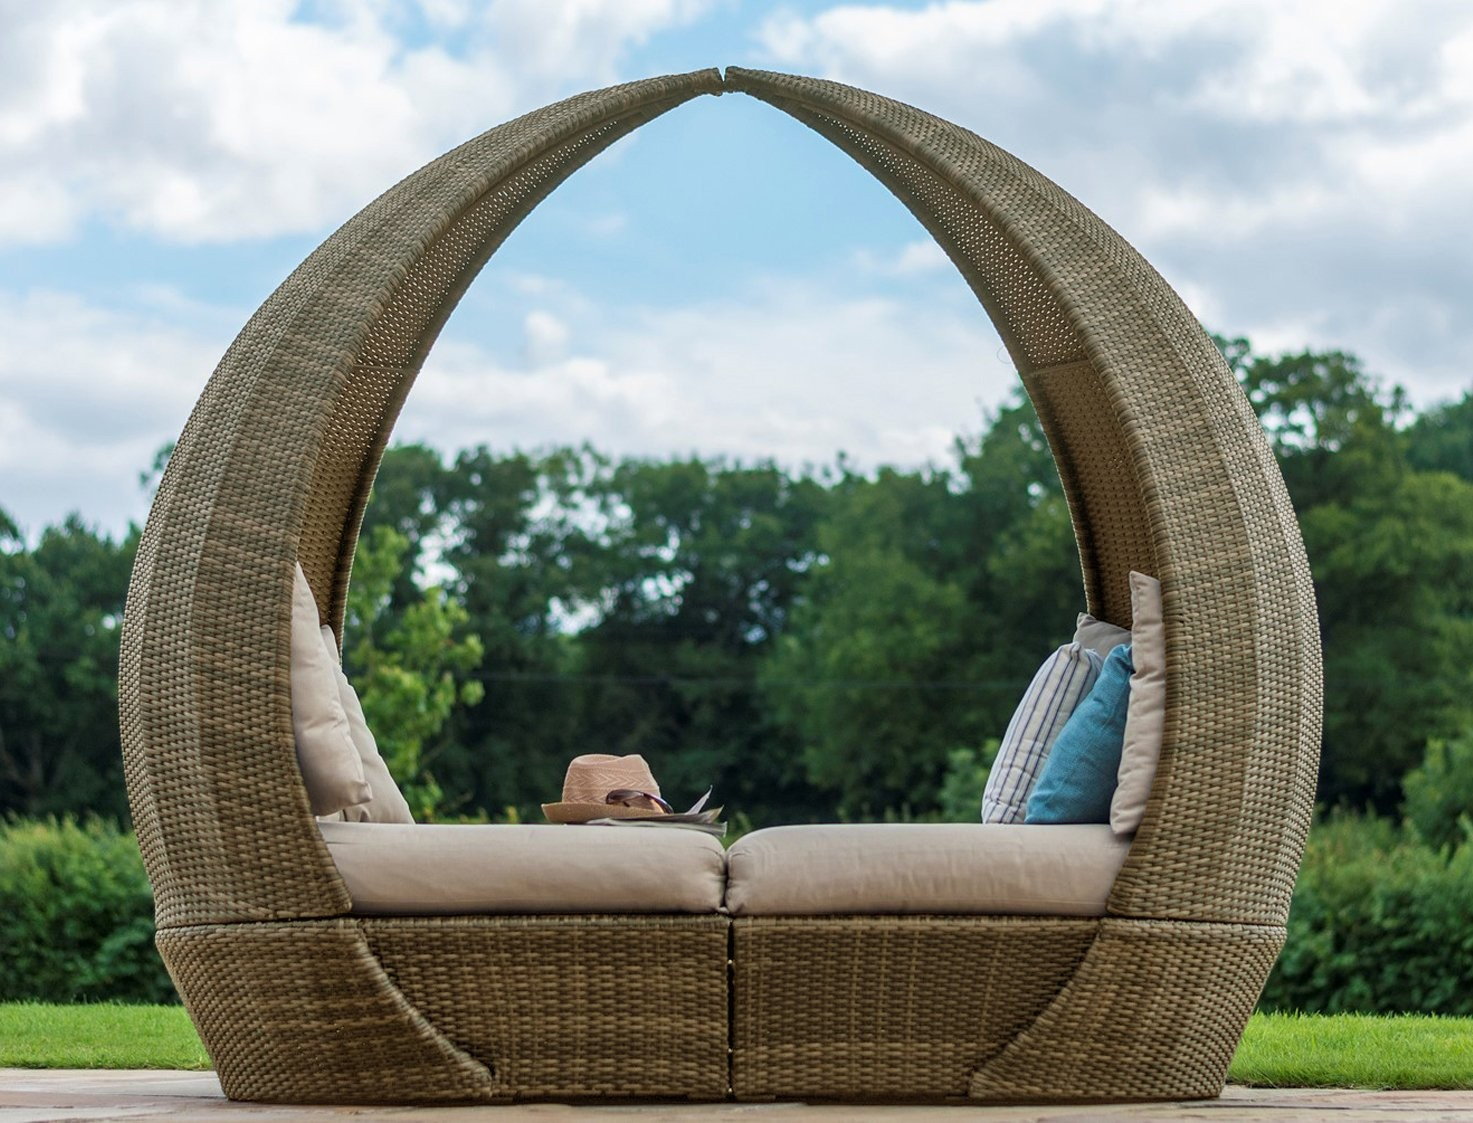 Maze Rattan Oxford Tulip Garden Furniture Daybed   Image 1 ...